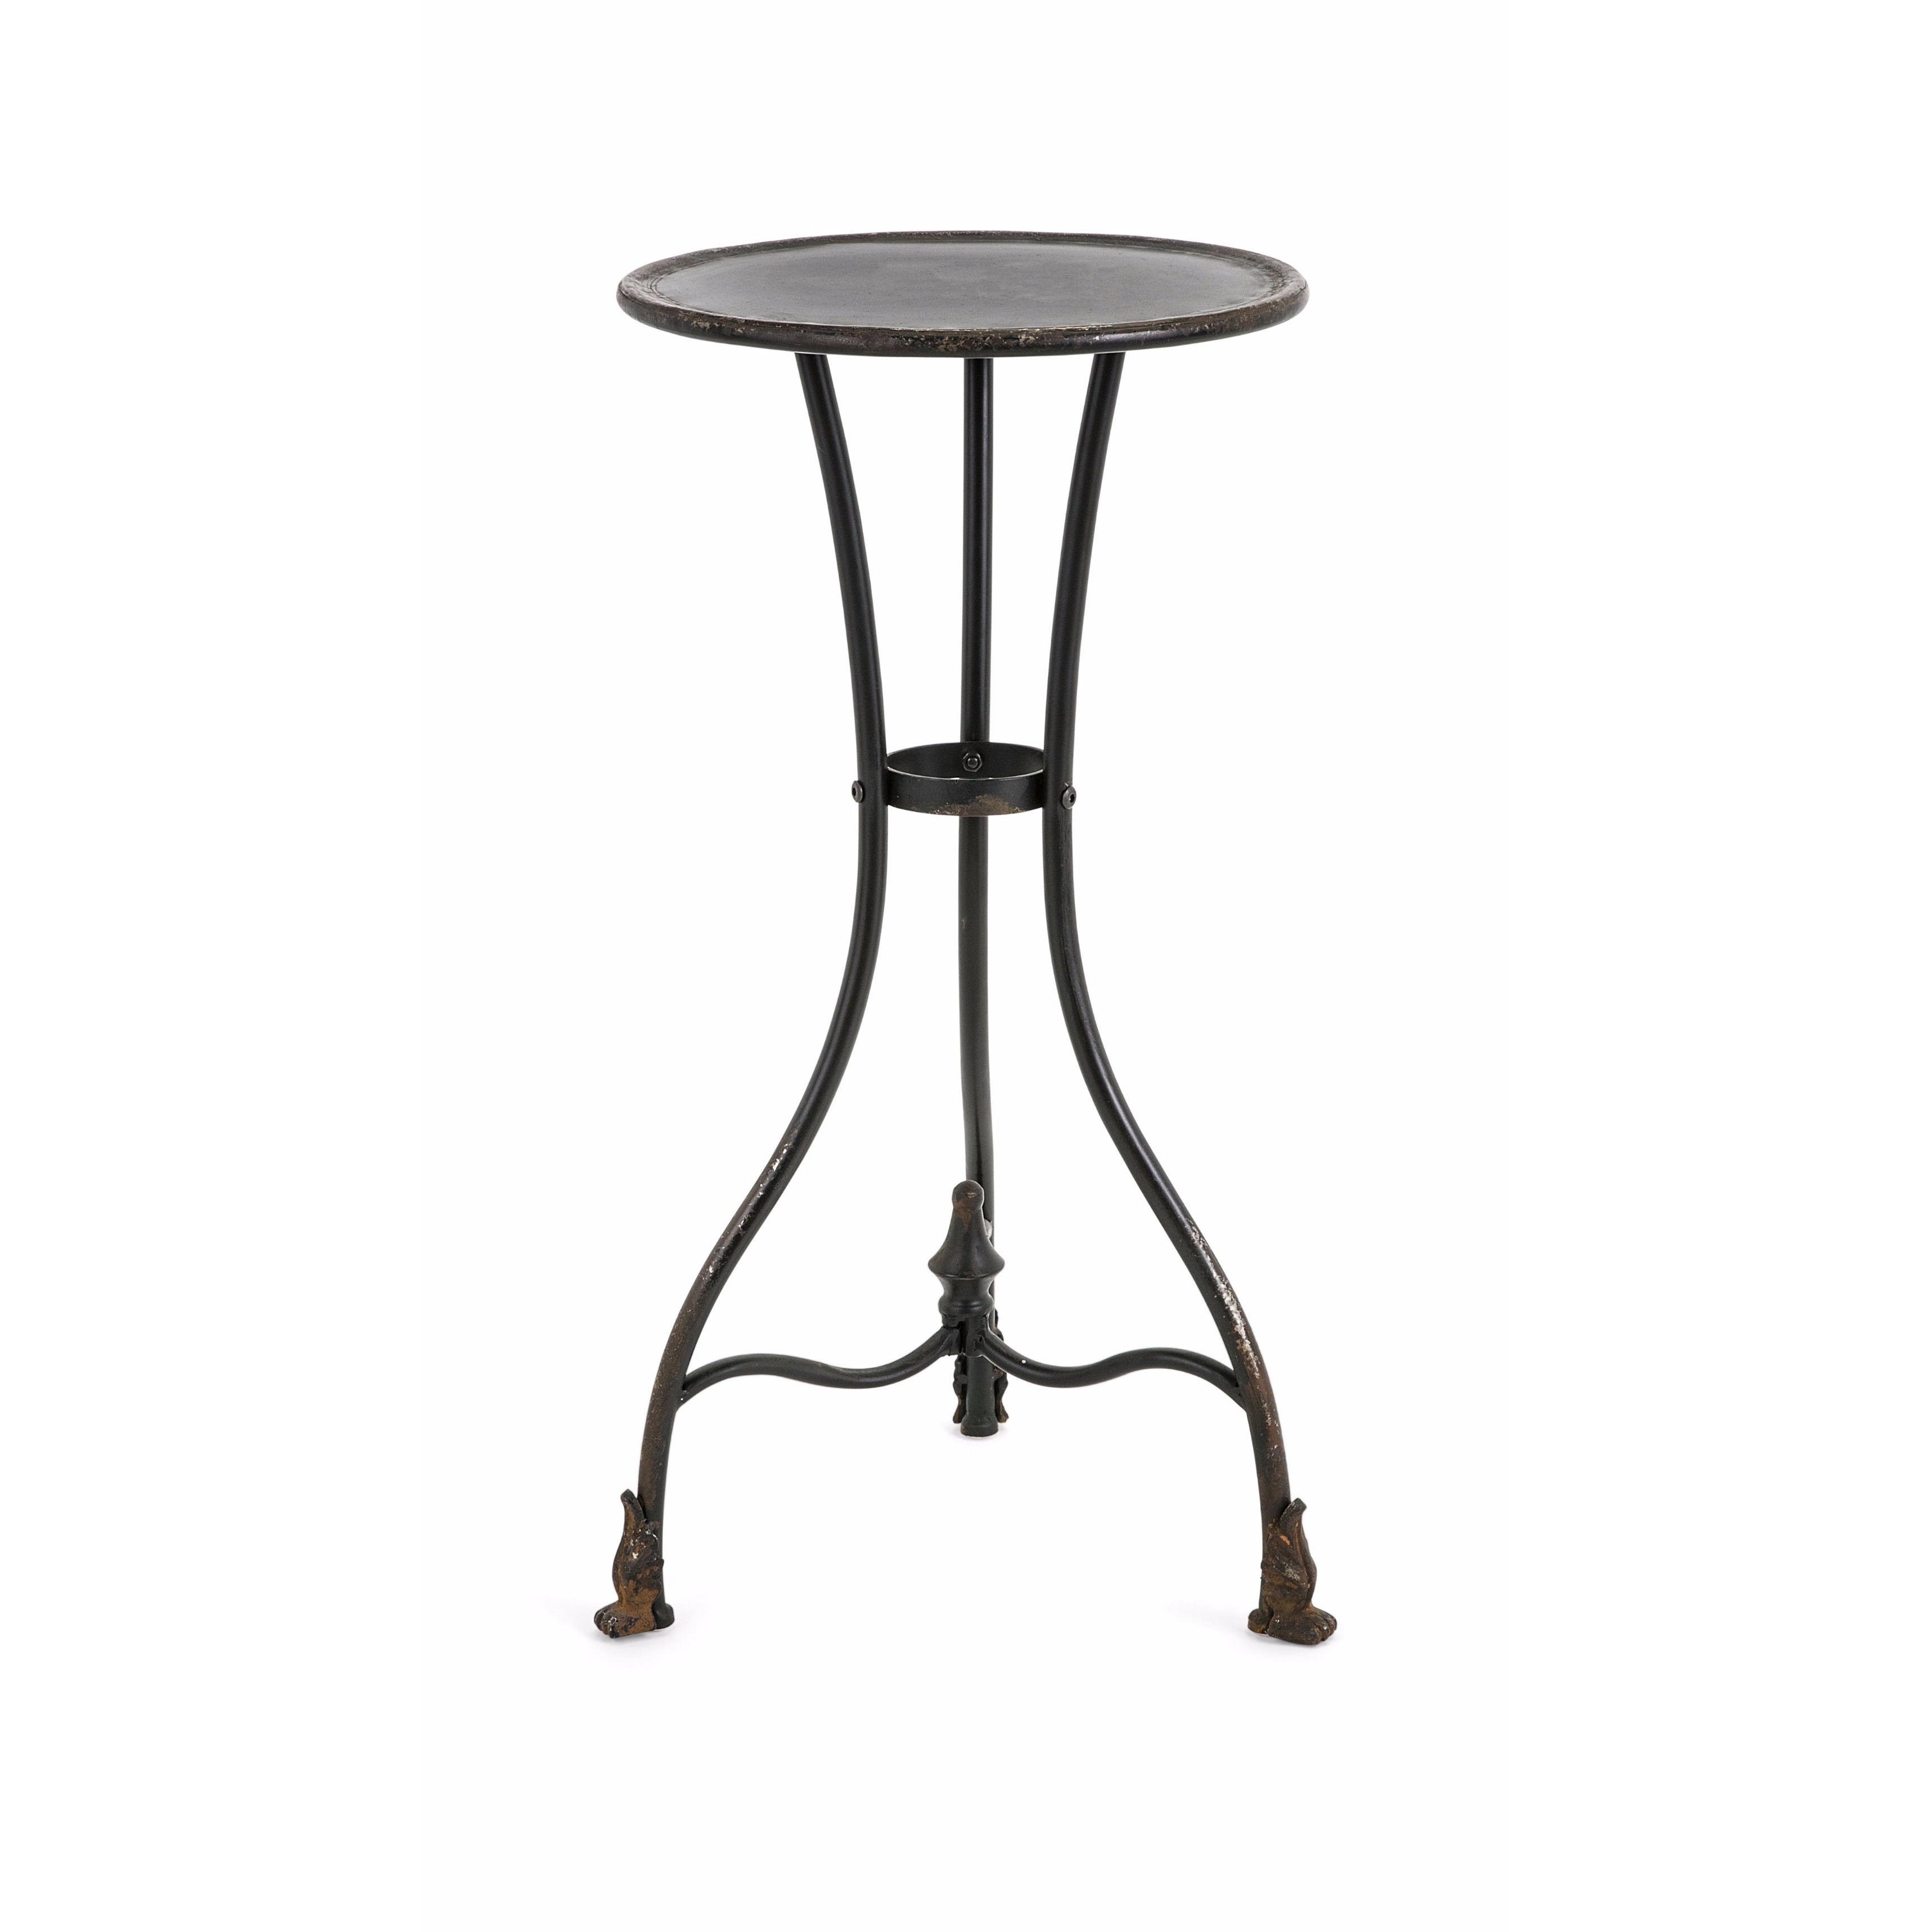 and living small ideas tables pedestal end table round target white design mini diy color ott corner gold redmond tiffan shades lamps painting contemporary accent outdoor lamp